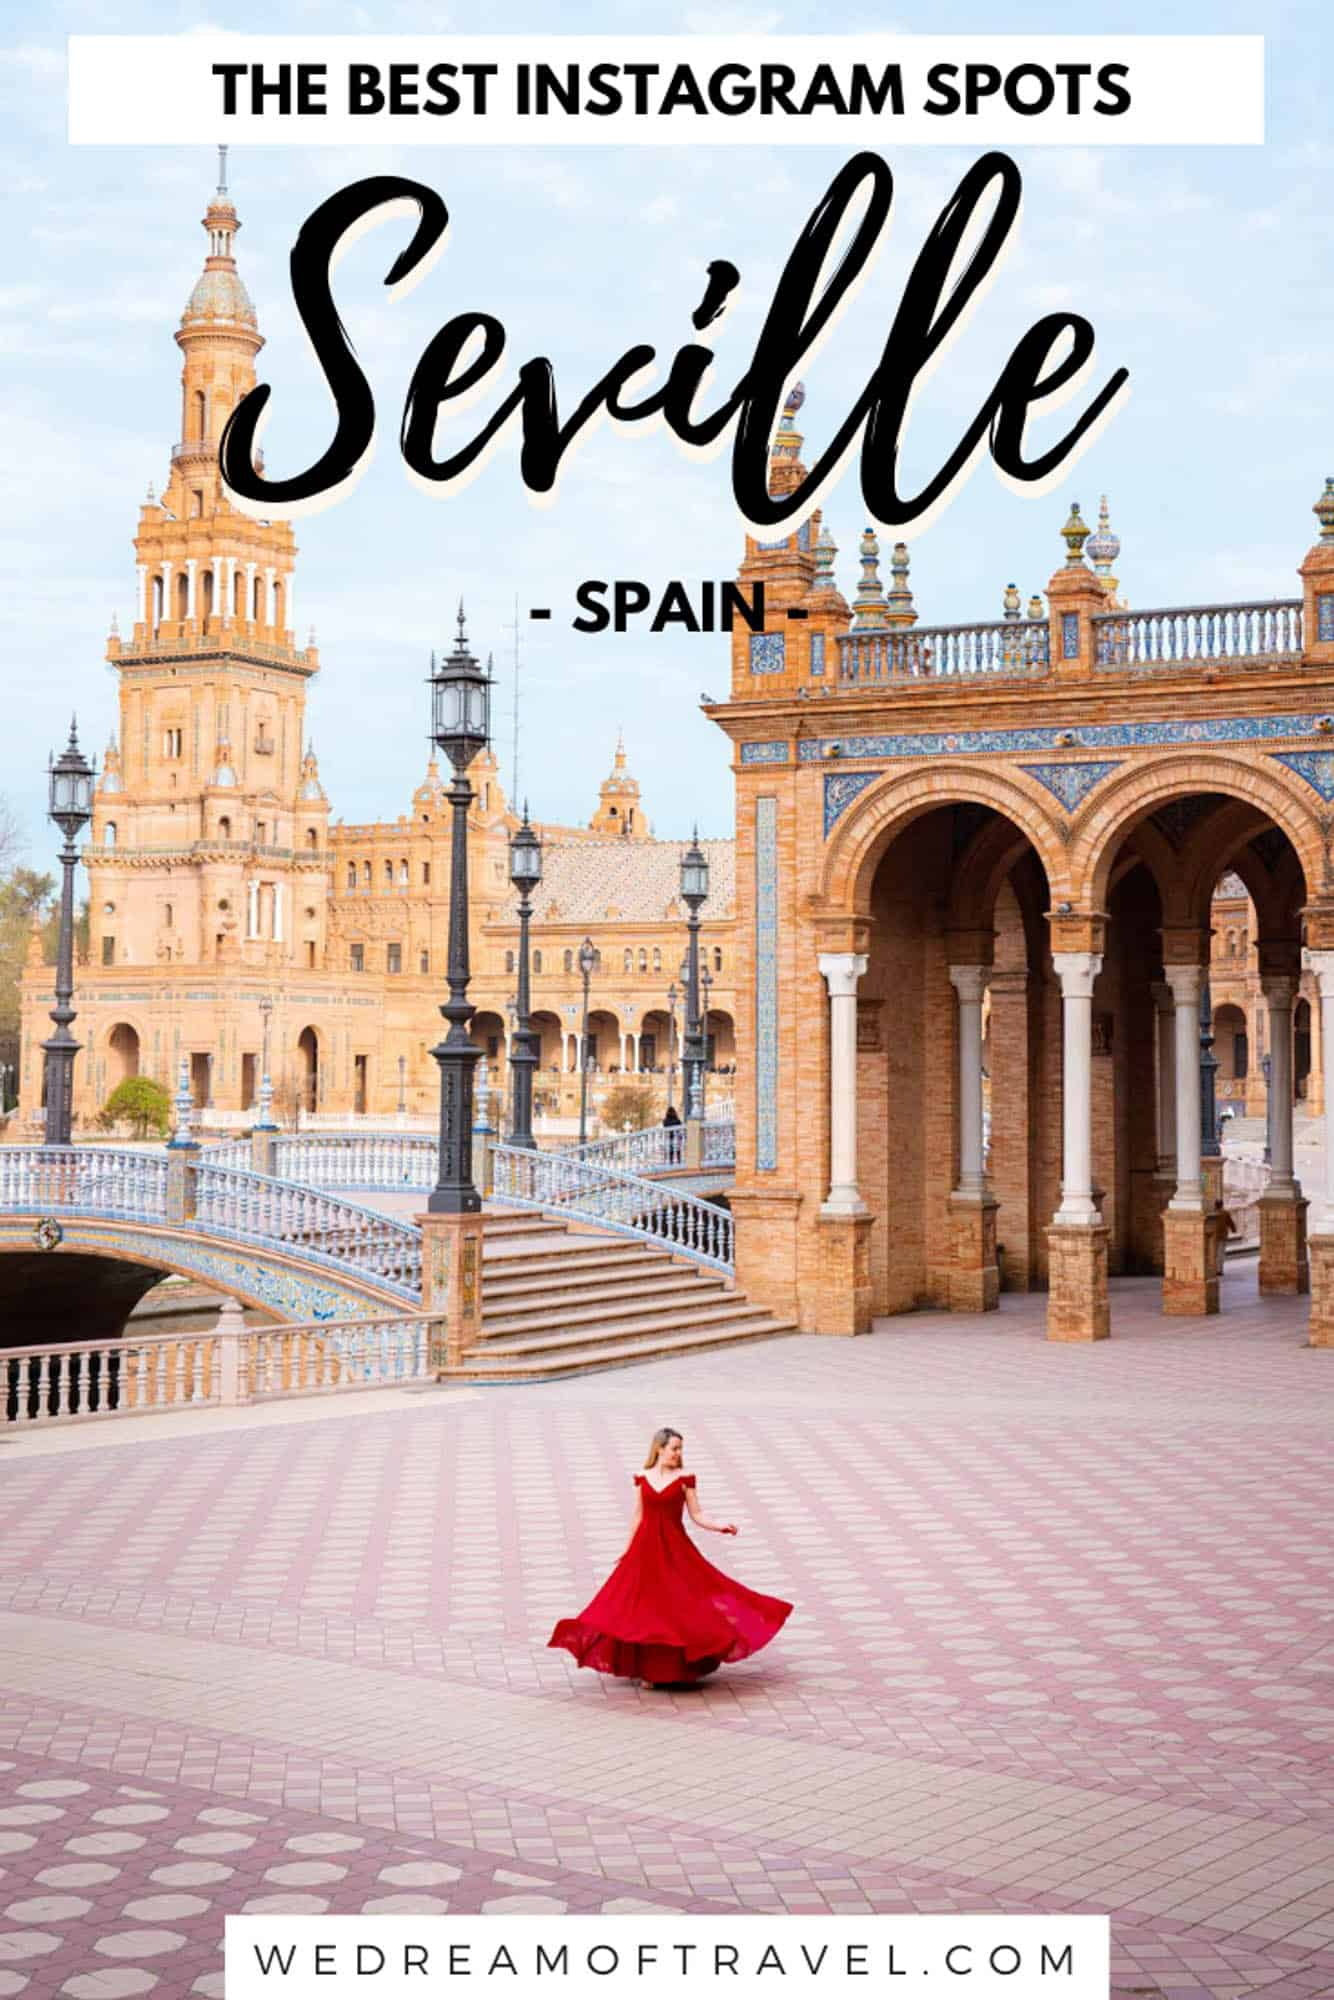 A photography guide to help you find the most instagrammable places in Seville, Spain.  All the most photogenic, beautiful places in this historic city.    #spainphotography #seville #spain #photography #instagram